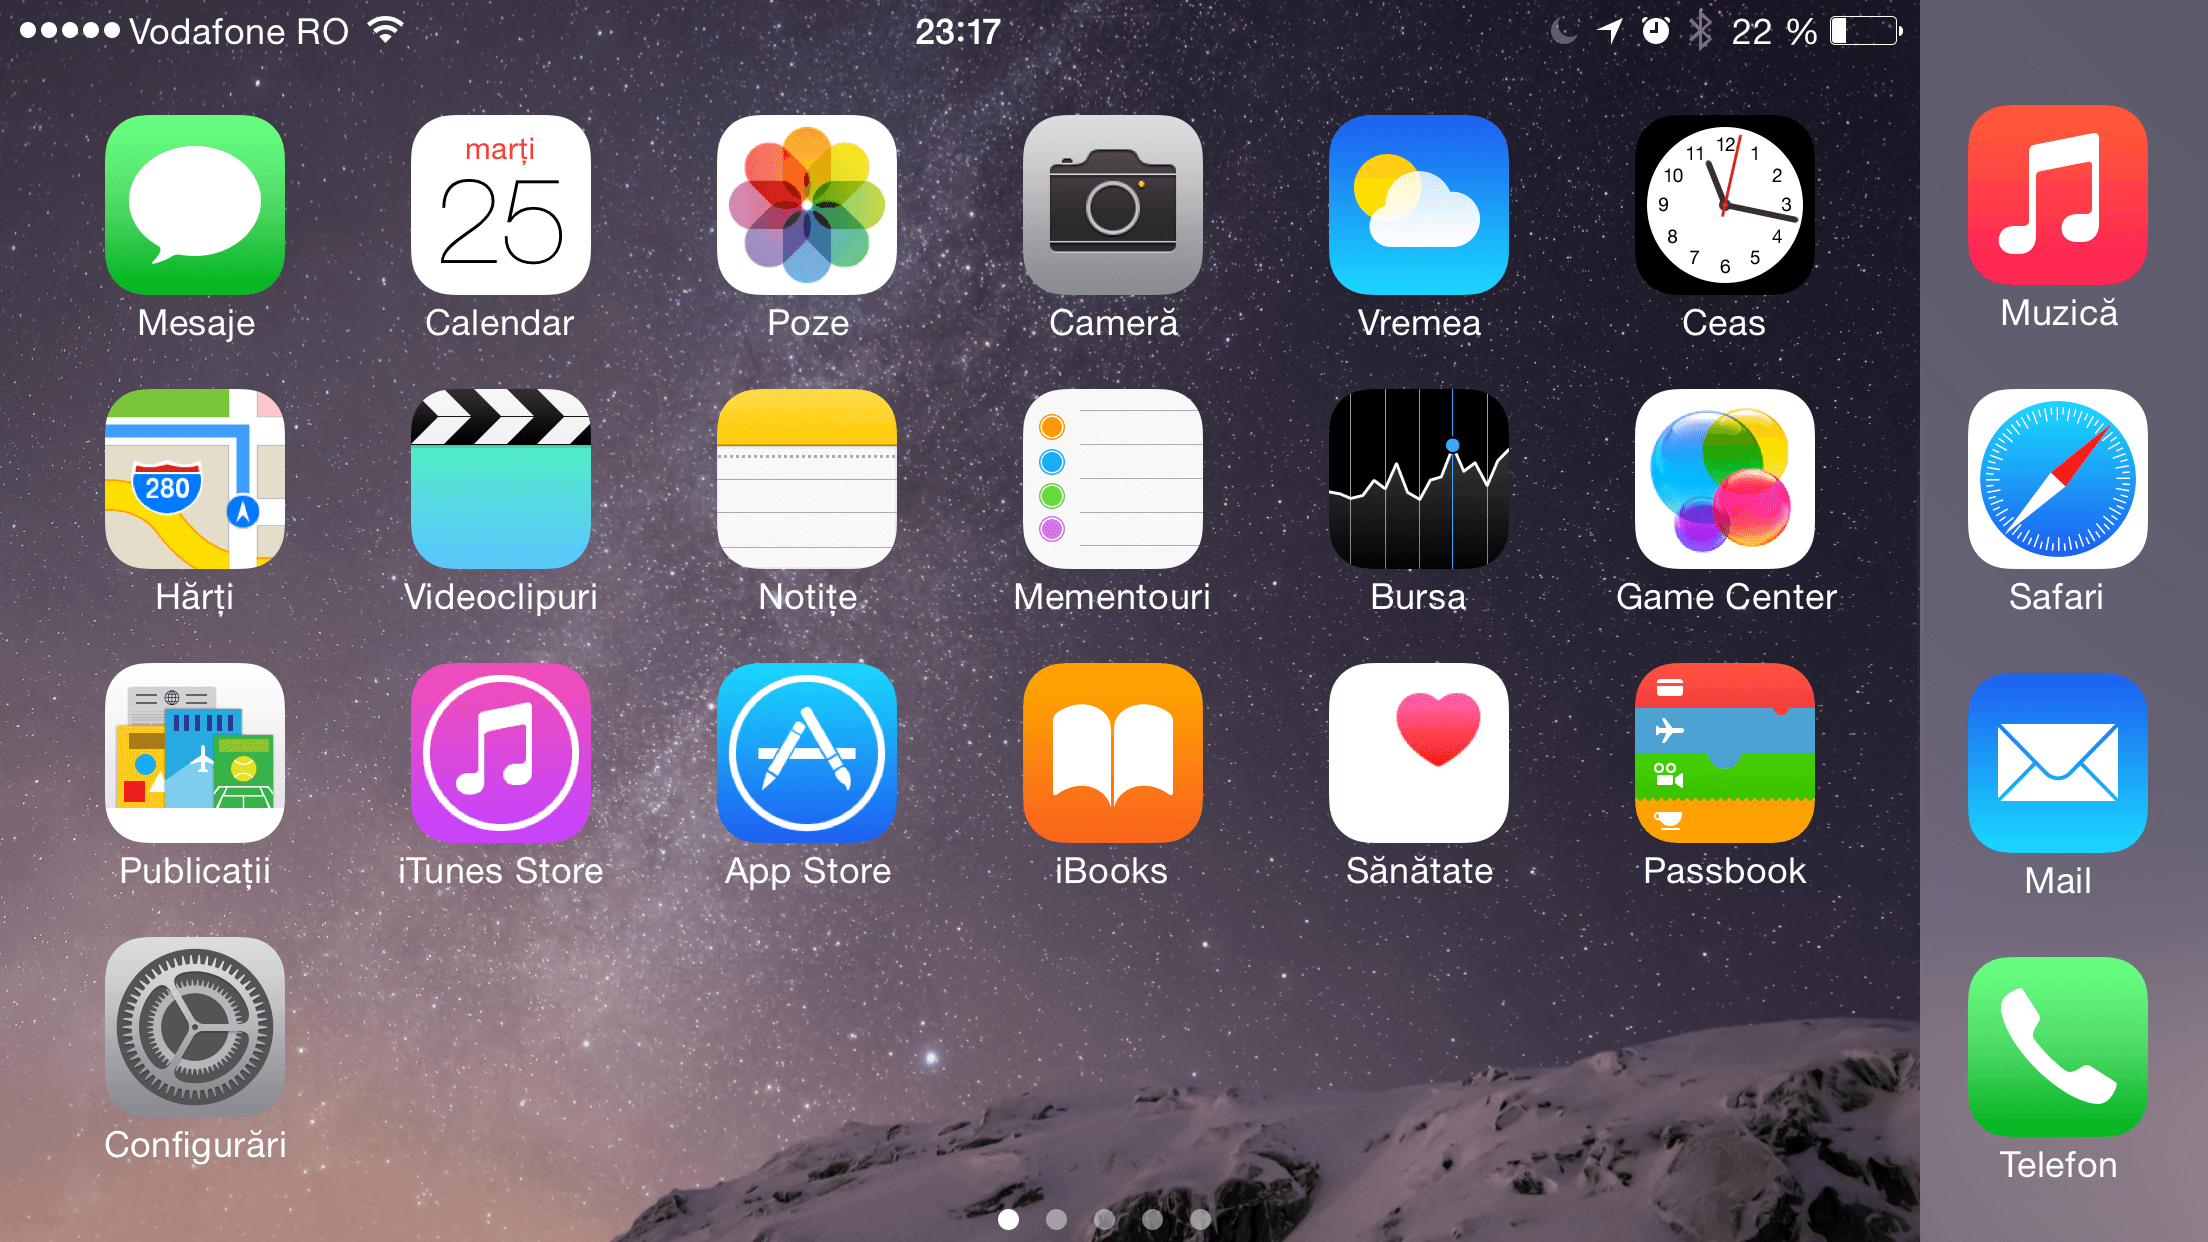 iphone 6 plus home screen vedere